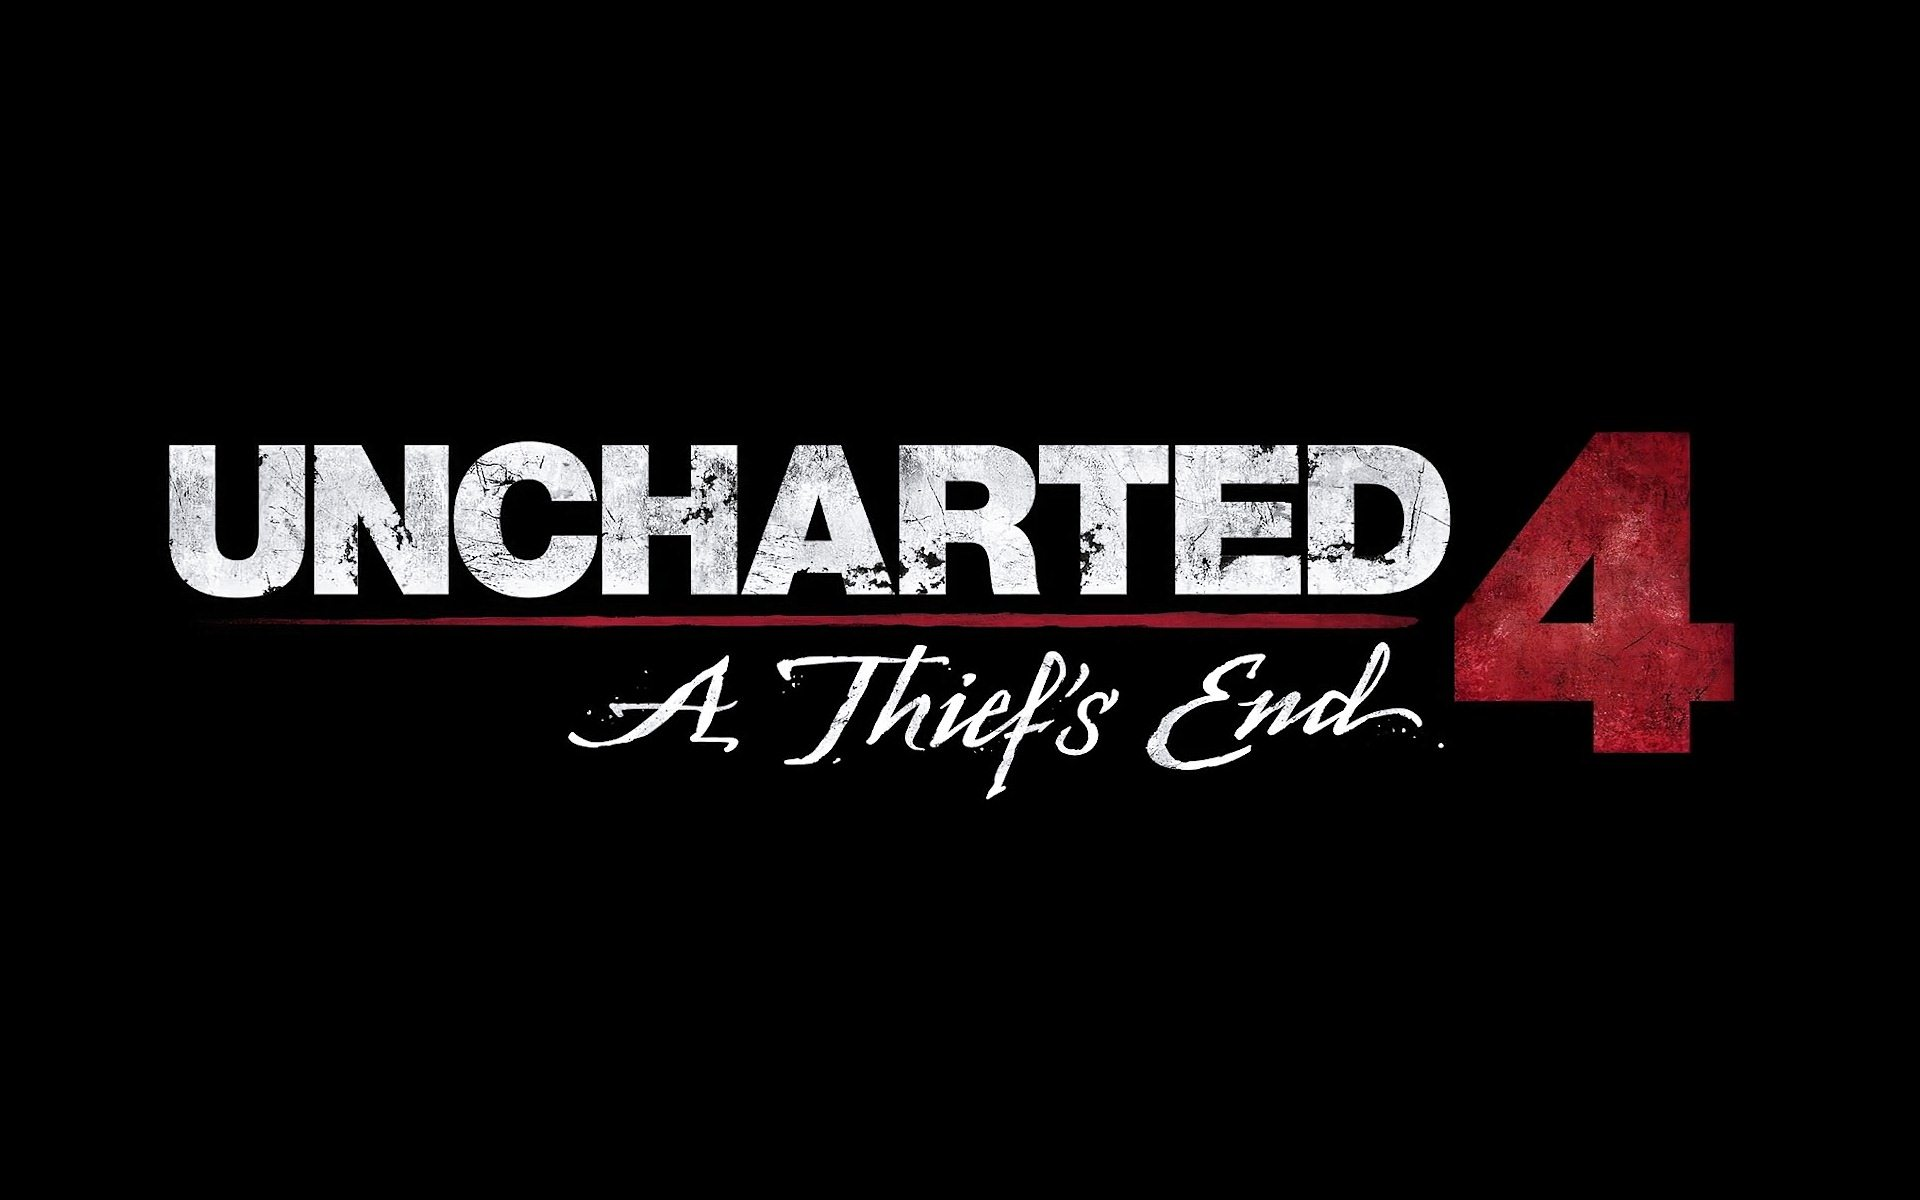 uncharted 4: a thief's end - save game